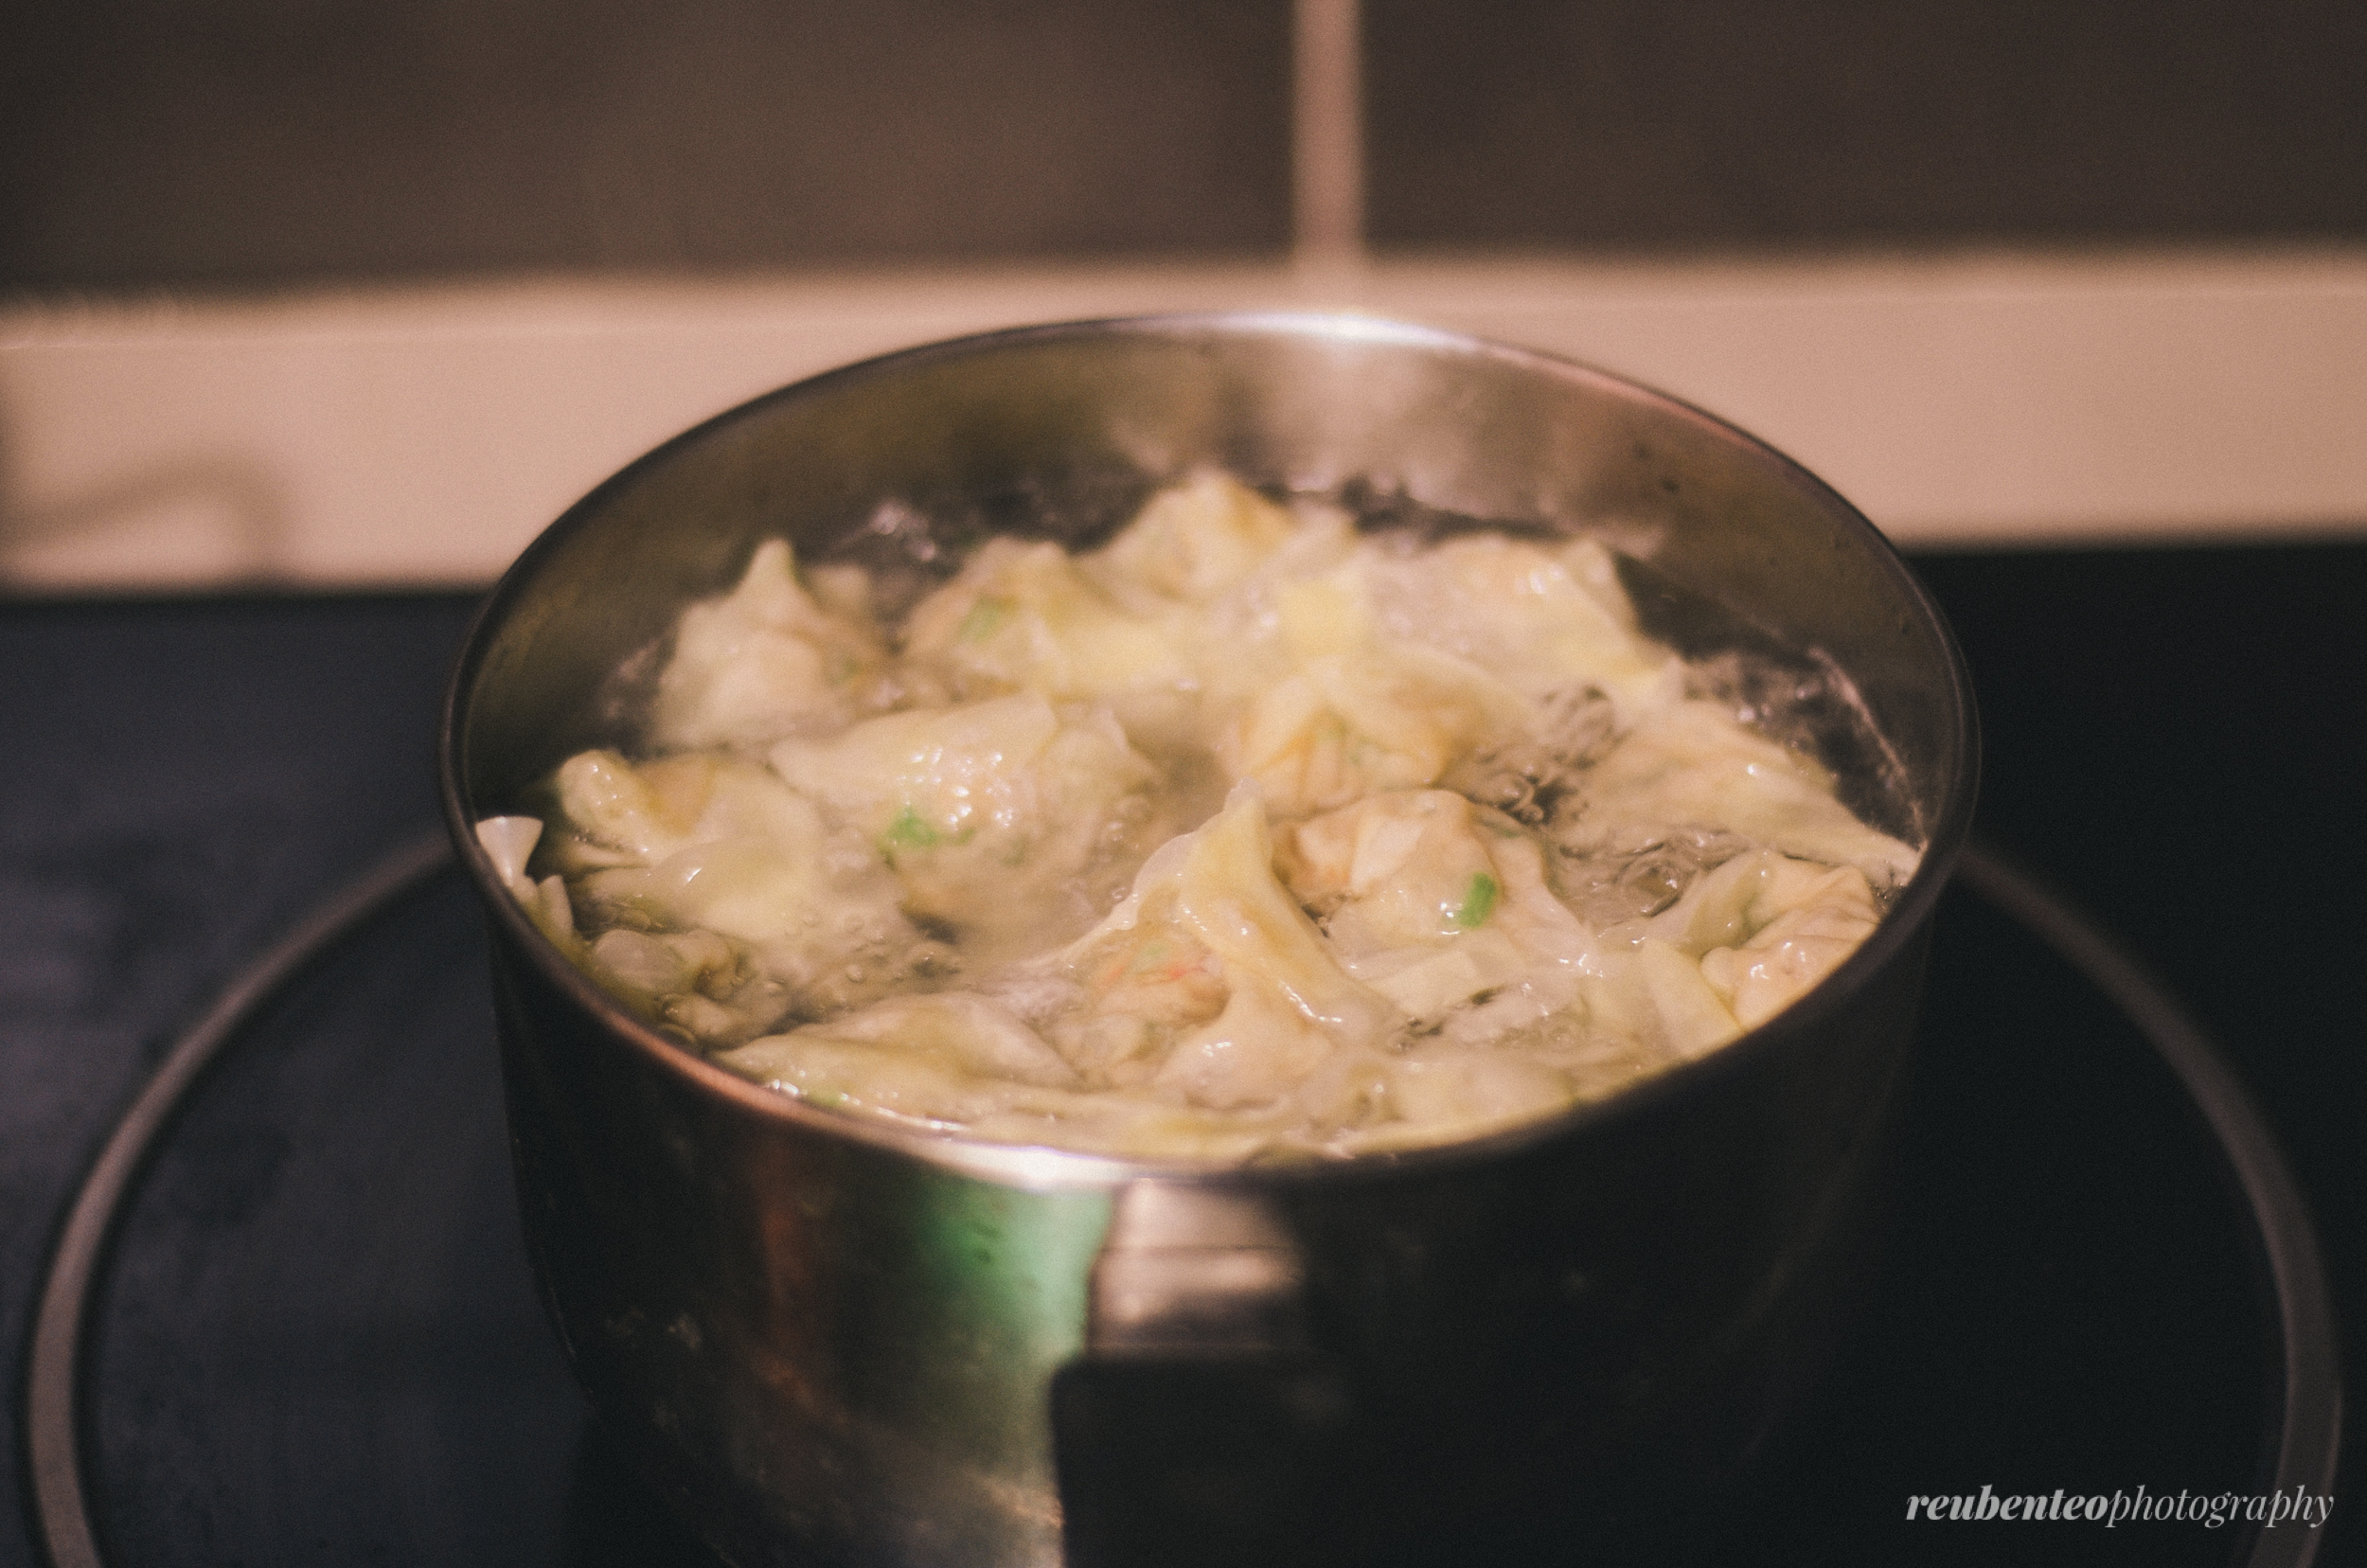 Homemade Wanton (Dumplings)